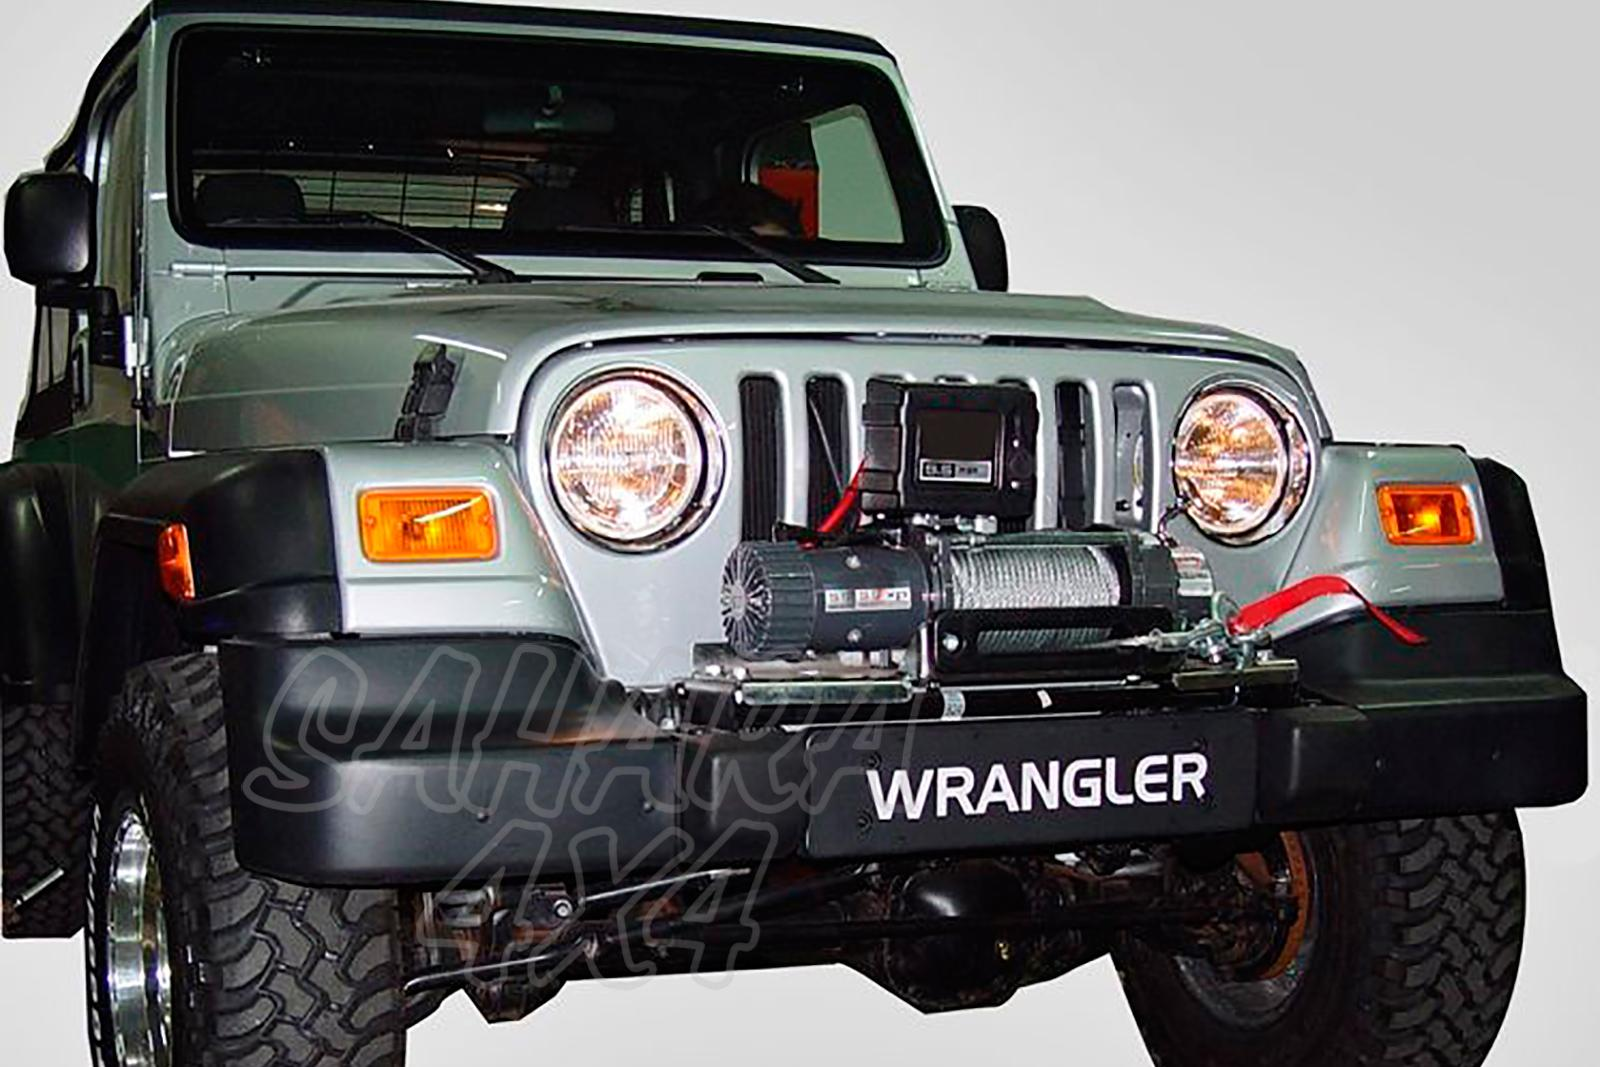 Winch Mount To Install Original Bumper For Jeep Wrangler Tj 97 06 Jk Dual Battery Wiring